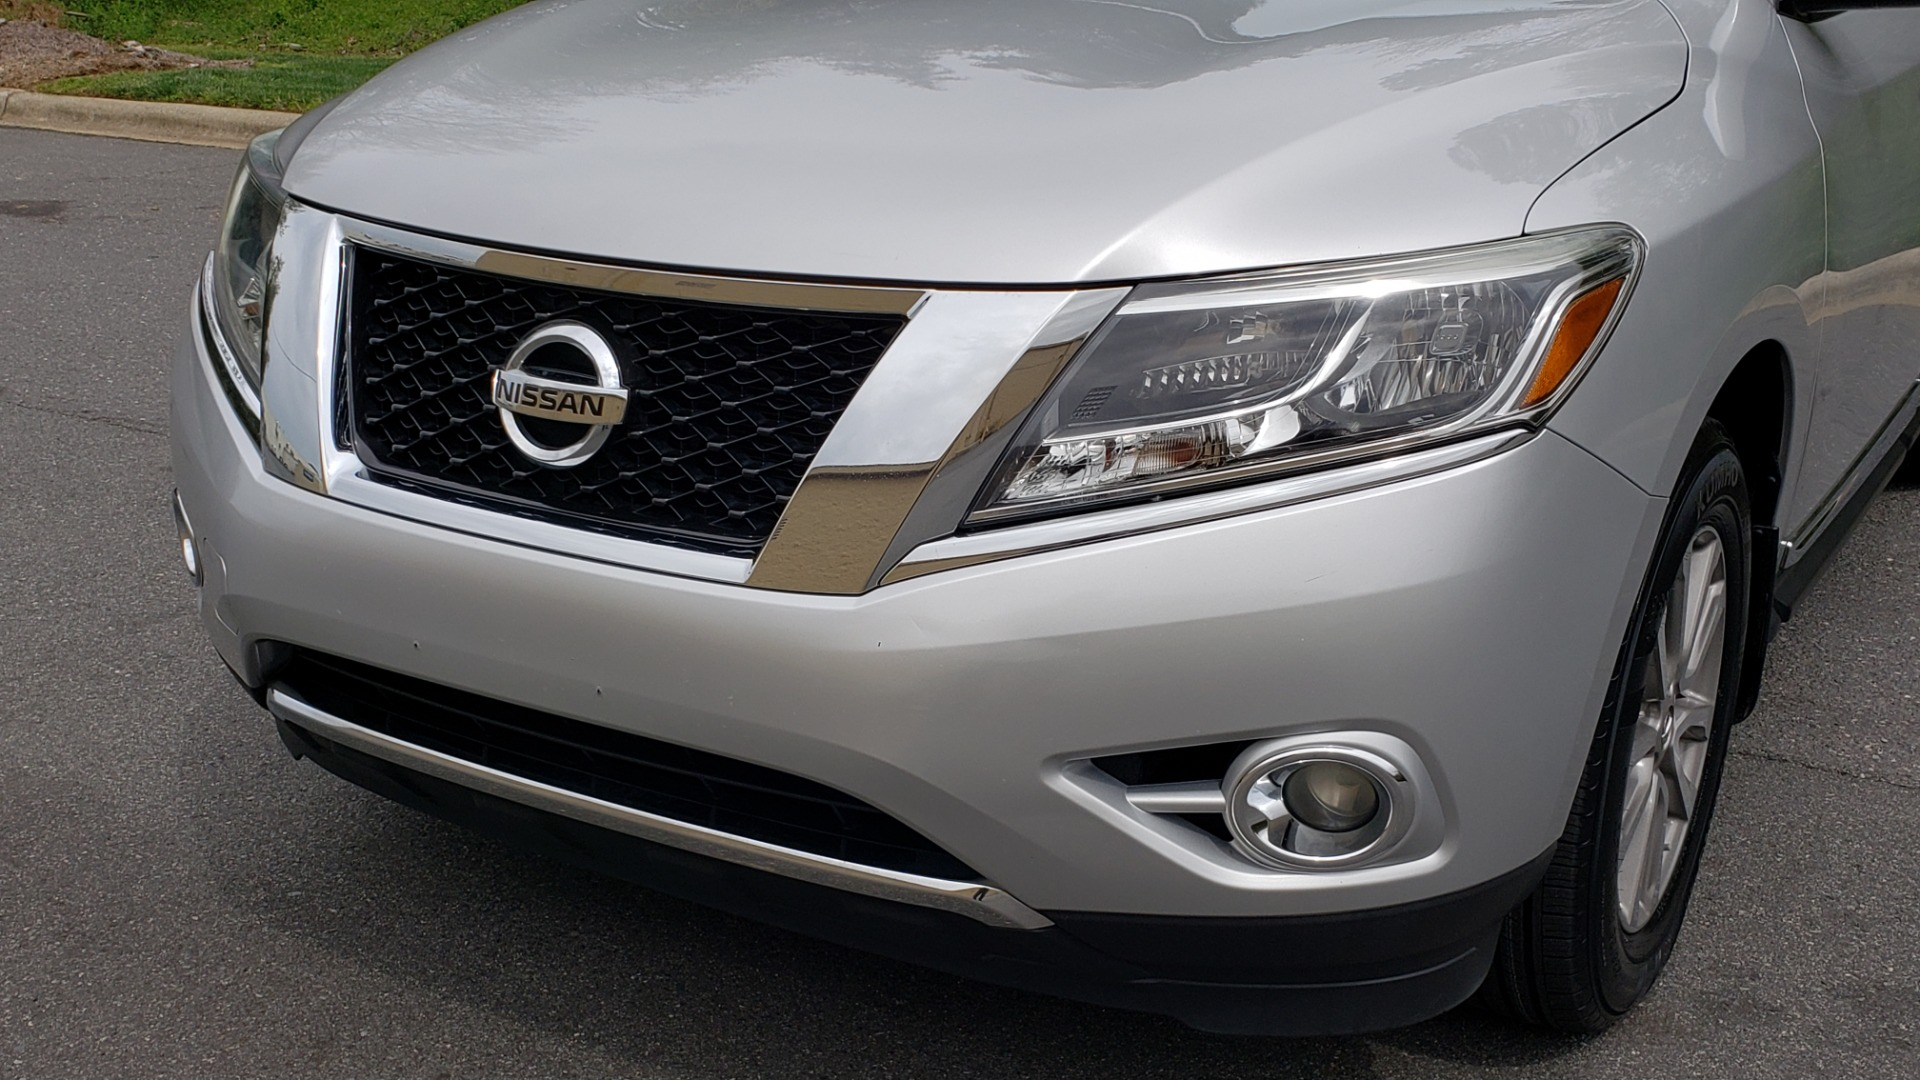 Used 2014 Nissan PATHFINDER SL TECH PKG / 4WD / NAV / SUNROOF / REARVIEW / 3-ROW for sale Sold at Formula Imports in Charlotte NC 28227 26